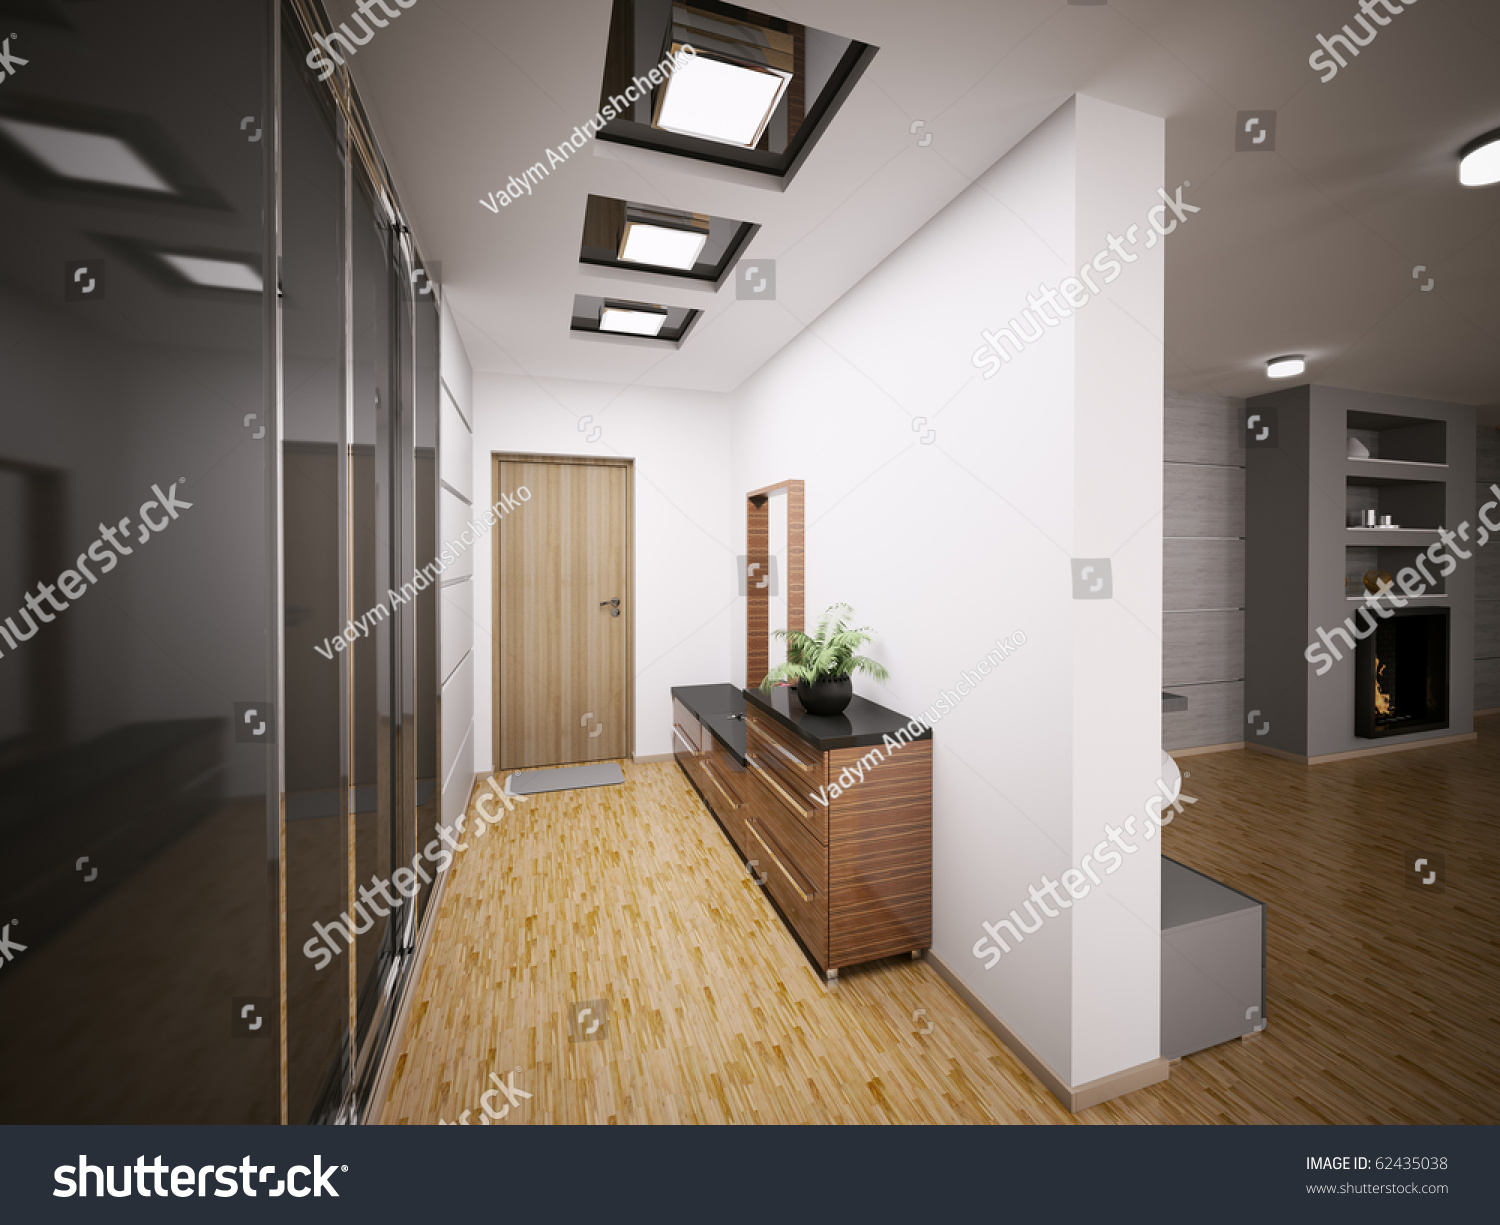 Interior modern entrance hall apartment 3d stock for Modern entrance hall